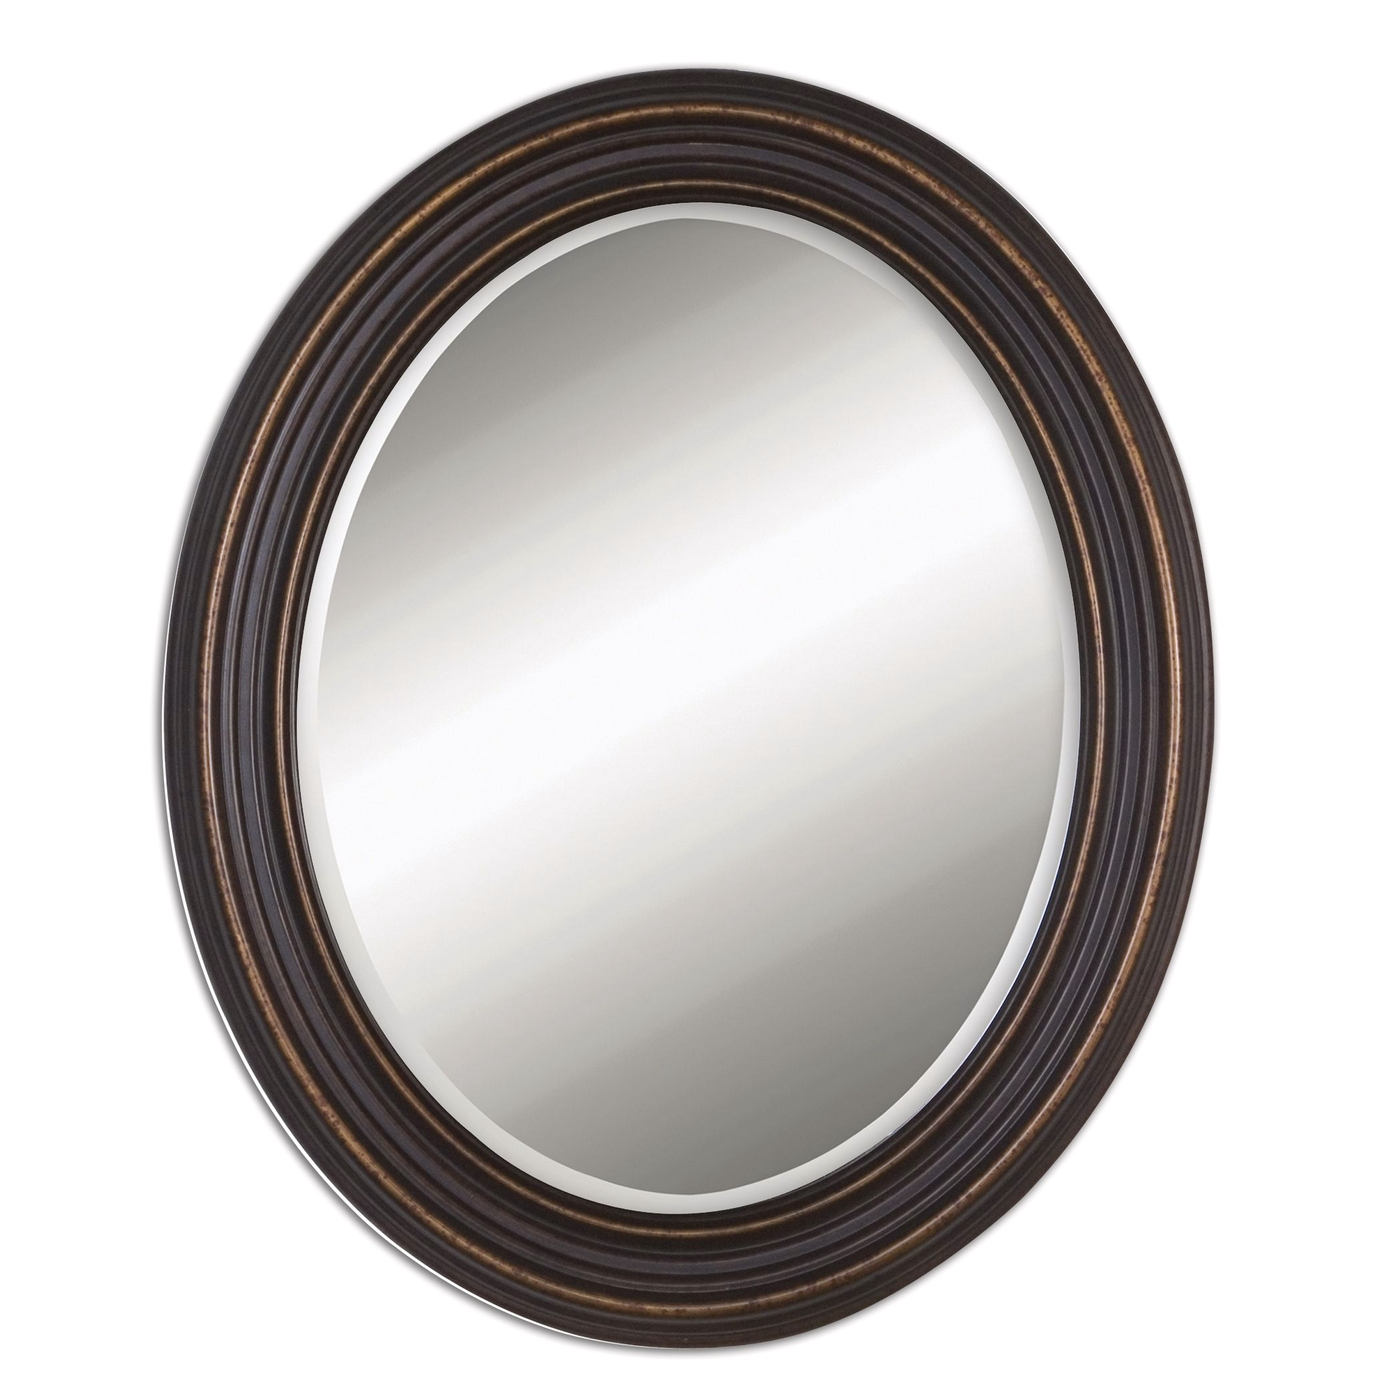 Ovesca traditional bronze oval mirror 14610 for Traditional mirror